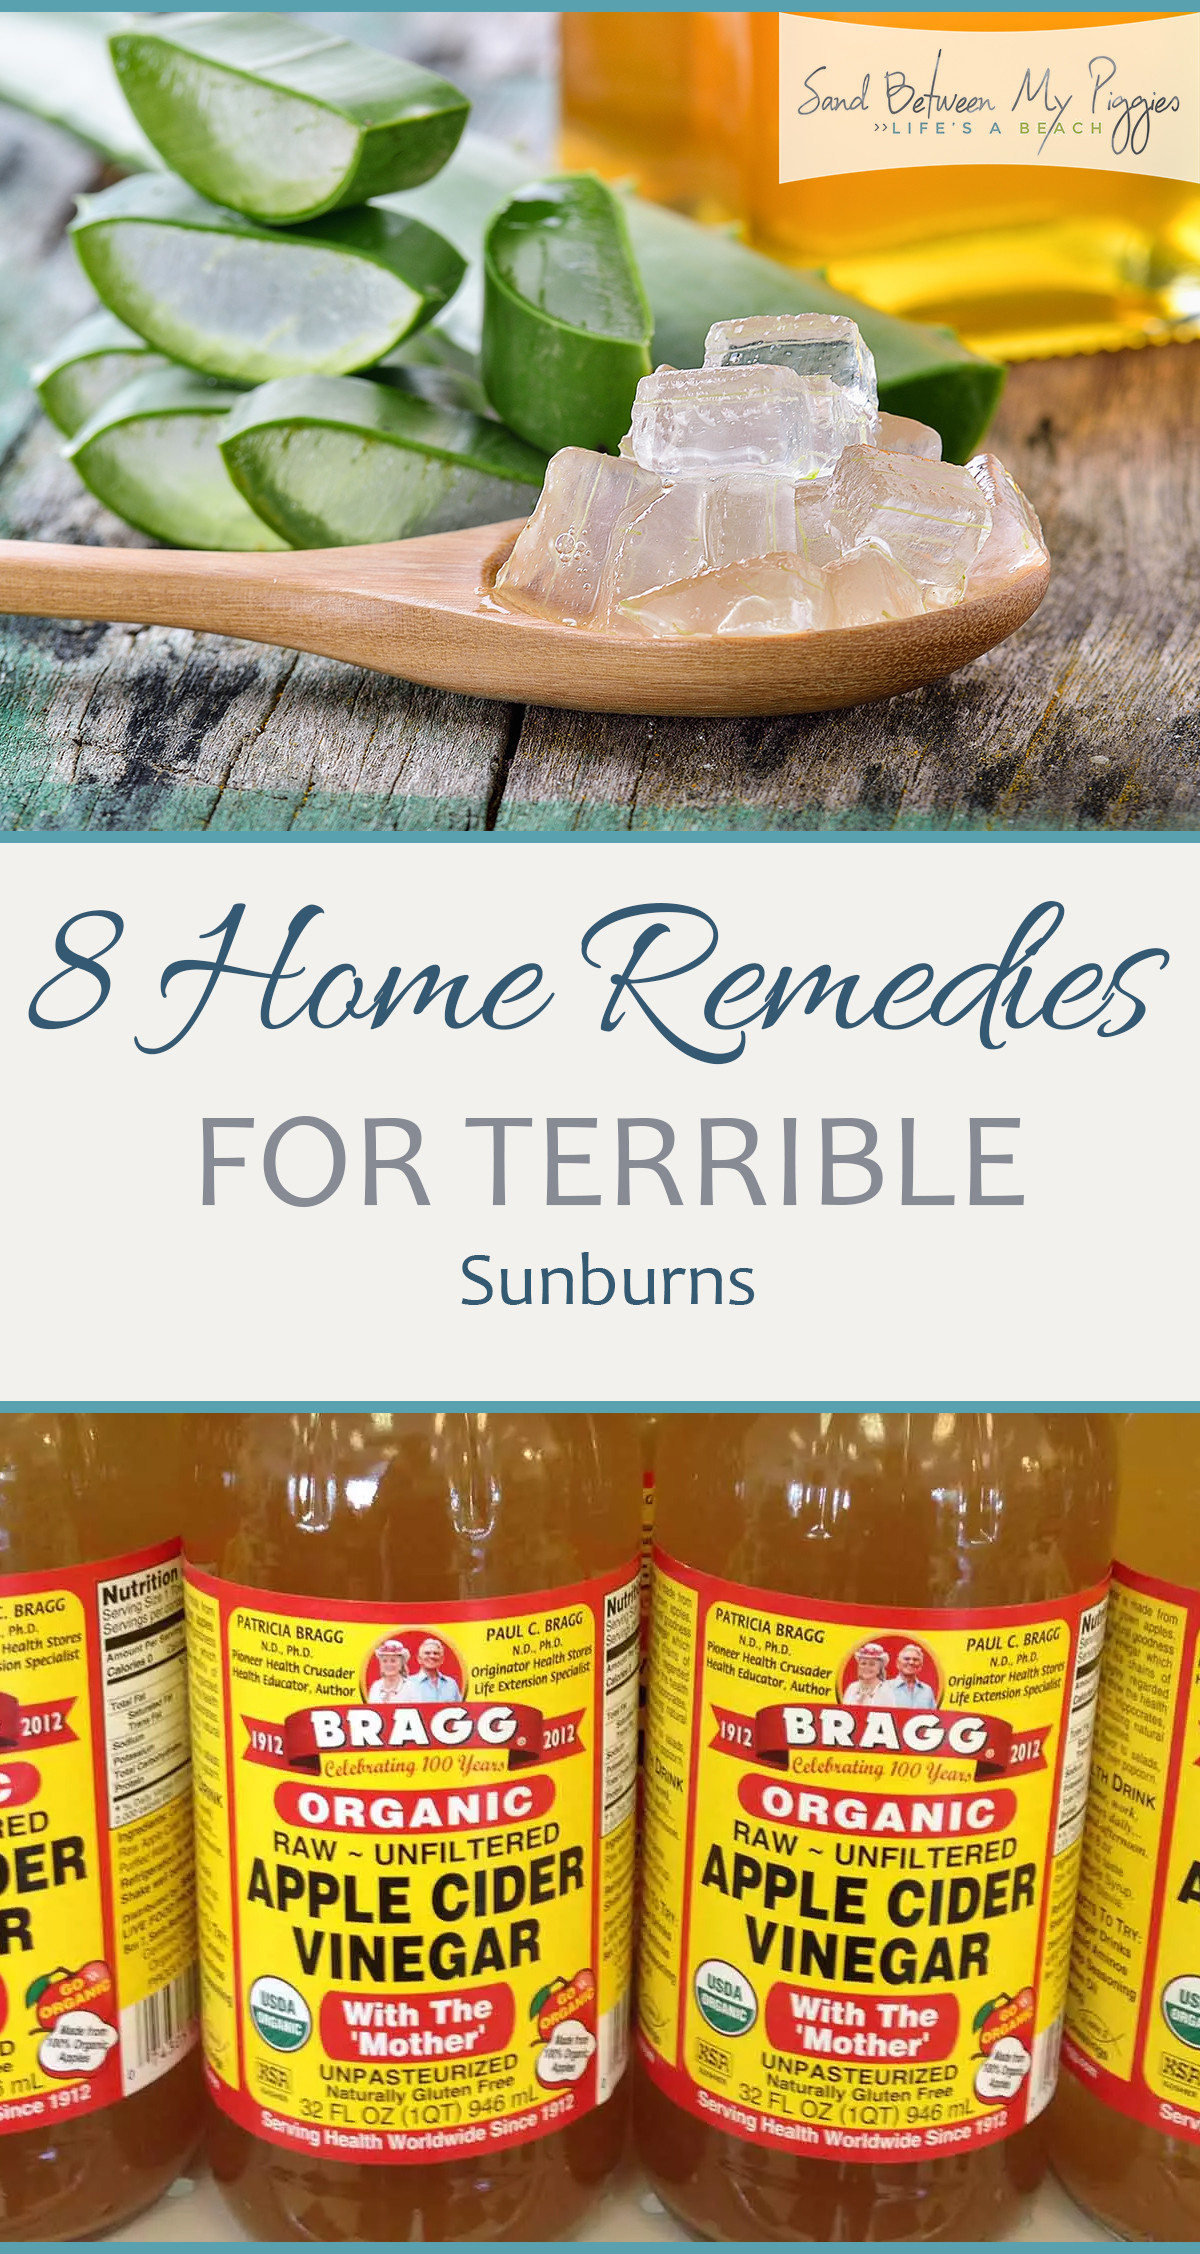 8 Home Remedies for Terrible Sunburns| Home Remedies, Home Remedies for Sunburns, Sunburn Remedies, Fast Ways to Help Sunburns, Natural Living, Natural Remedy for Sunburns| #Sunburn #NaturalRemedy #HomeRemedies #NaturalHome #NaturalLiving #SunburnRemedy